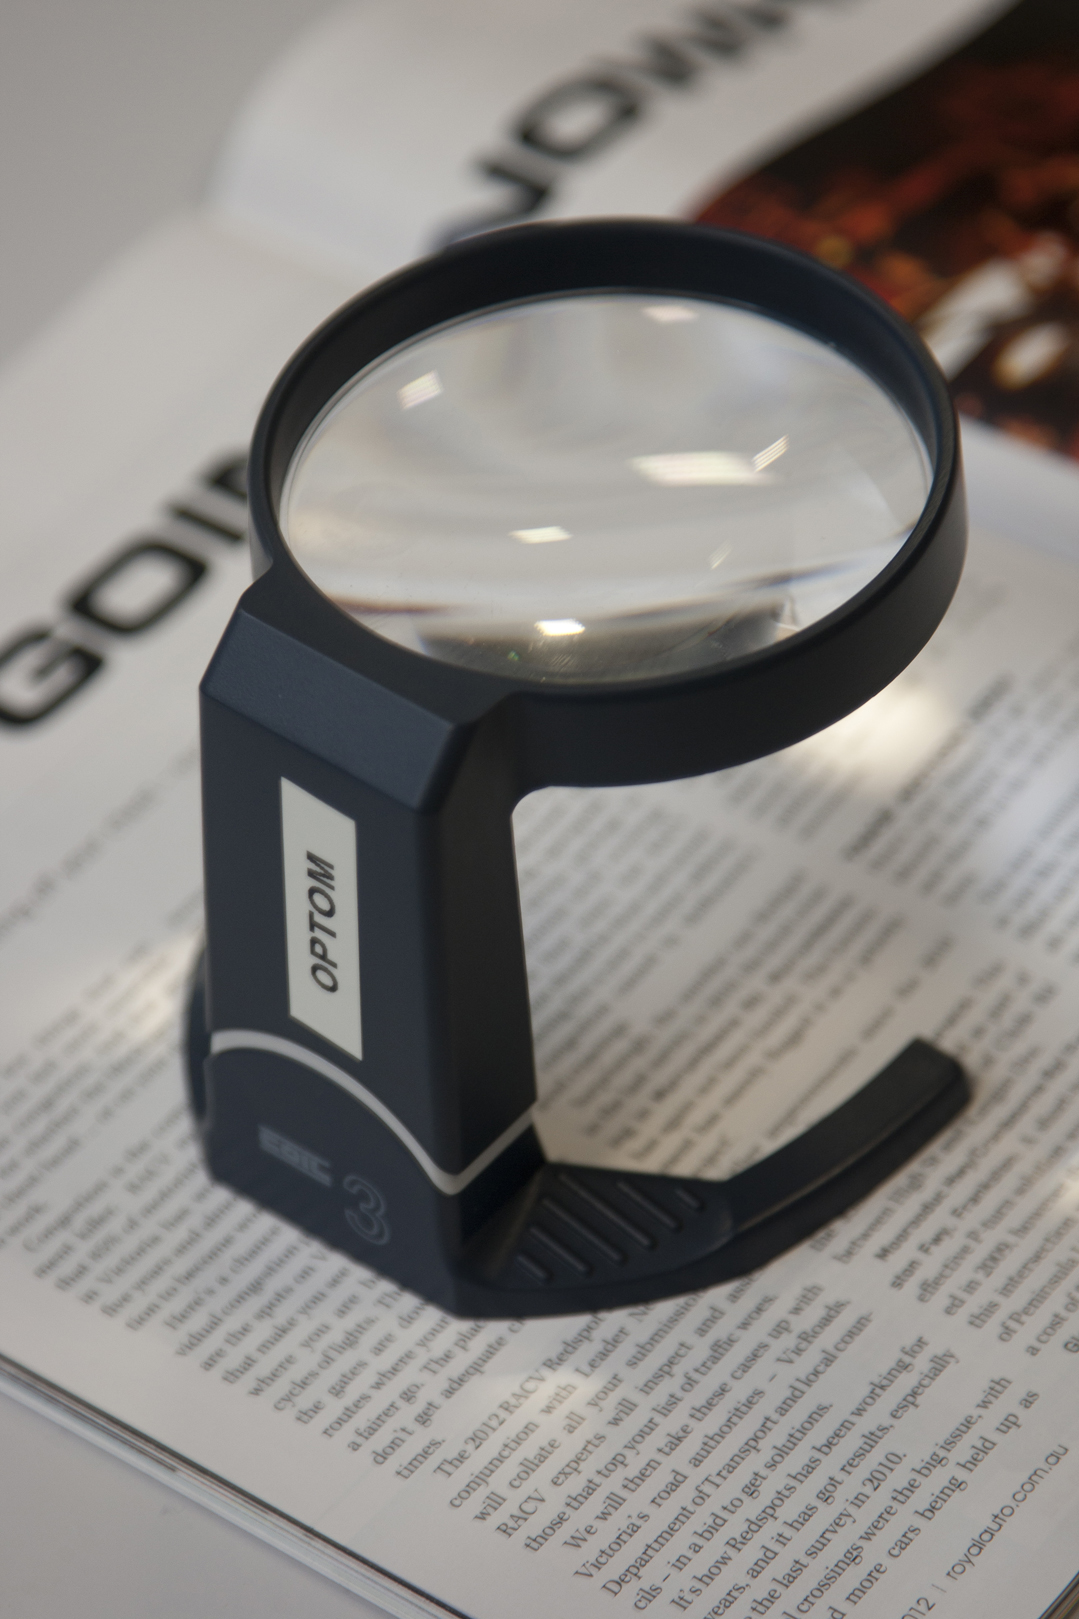 Non illuminated stand magnifier on a magazine